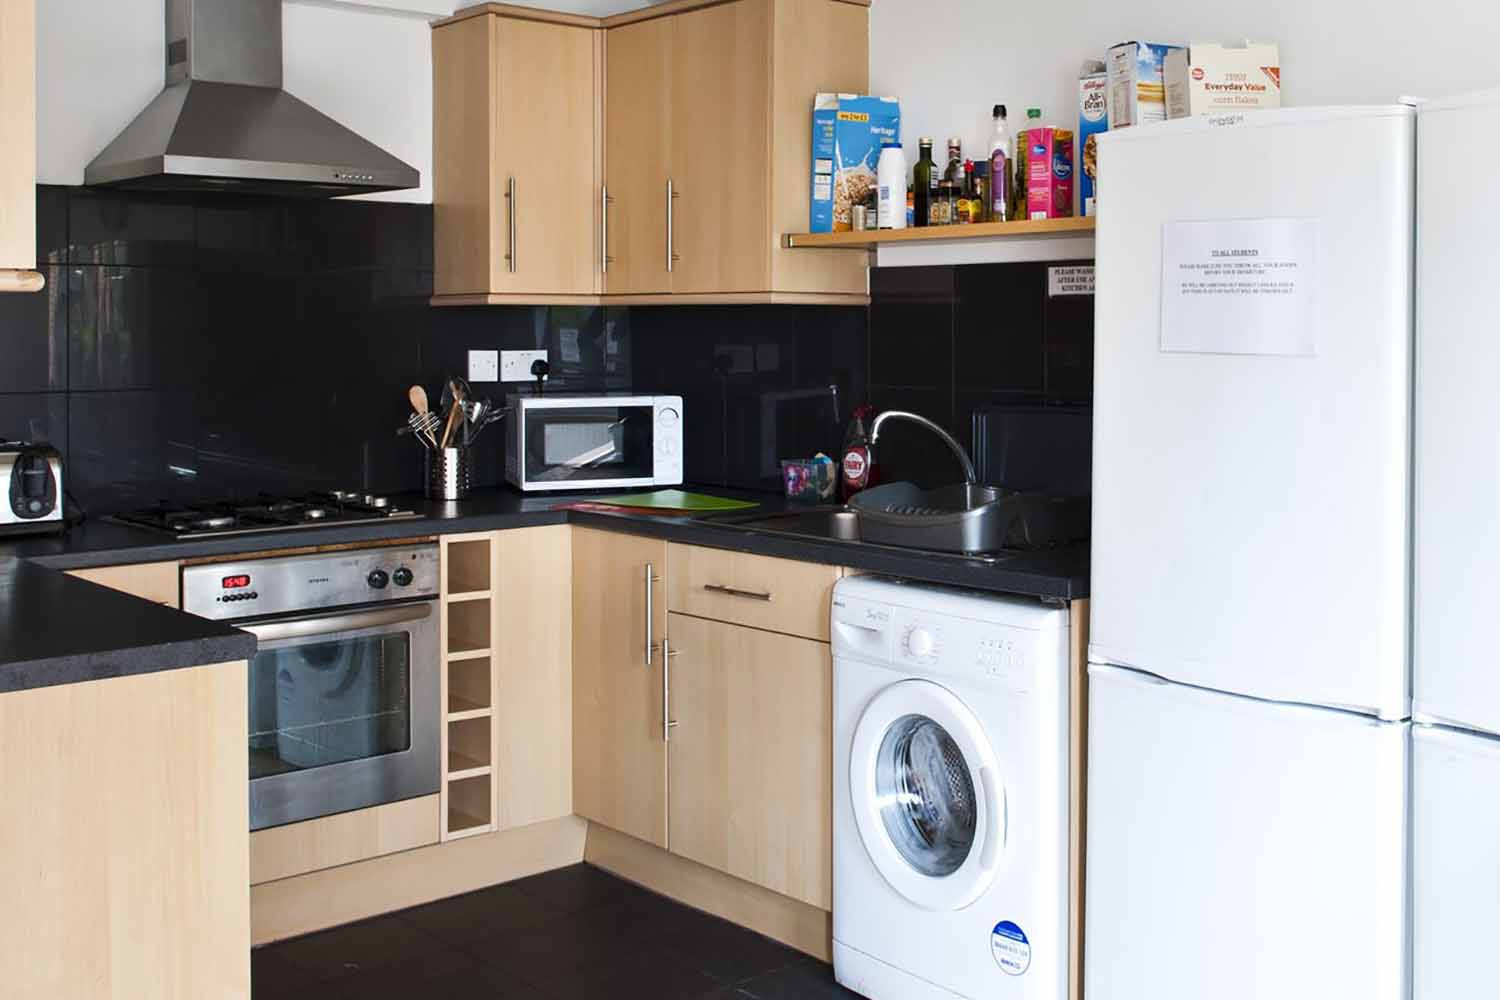 London Central_Acc_Shared apartments_kitchen_02